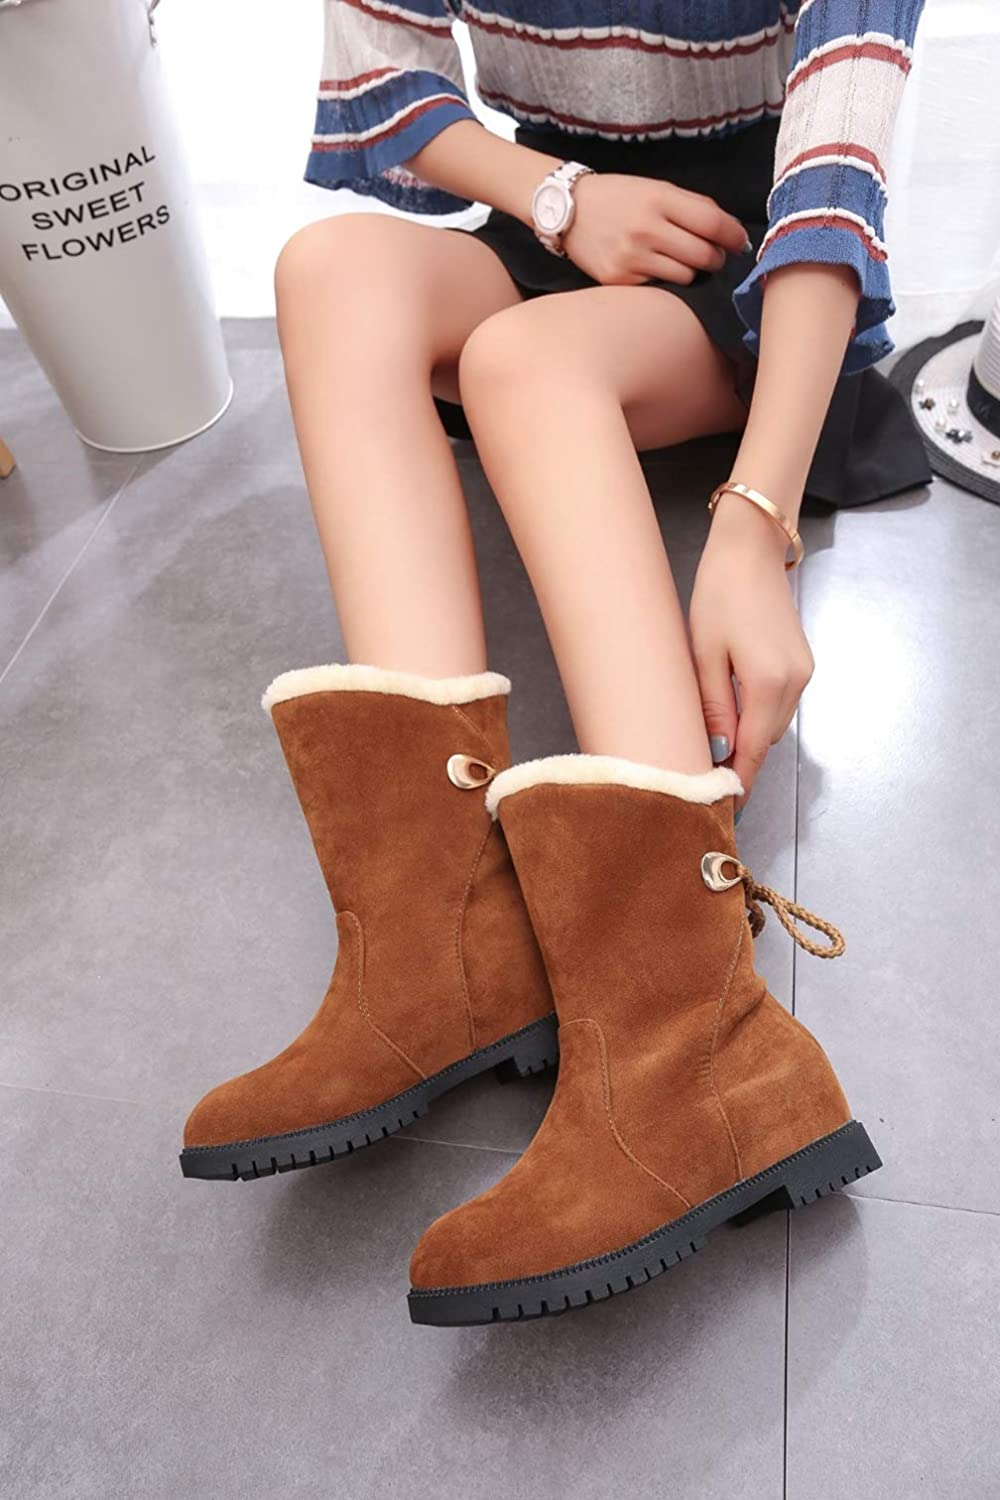 Winter Women Down Boots Fashion Girls Ankle Snow Boots Ladies Anti Slip Plush Insole Warm Fur Shoes